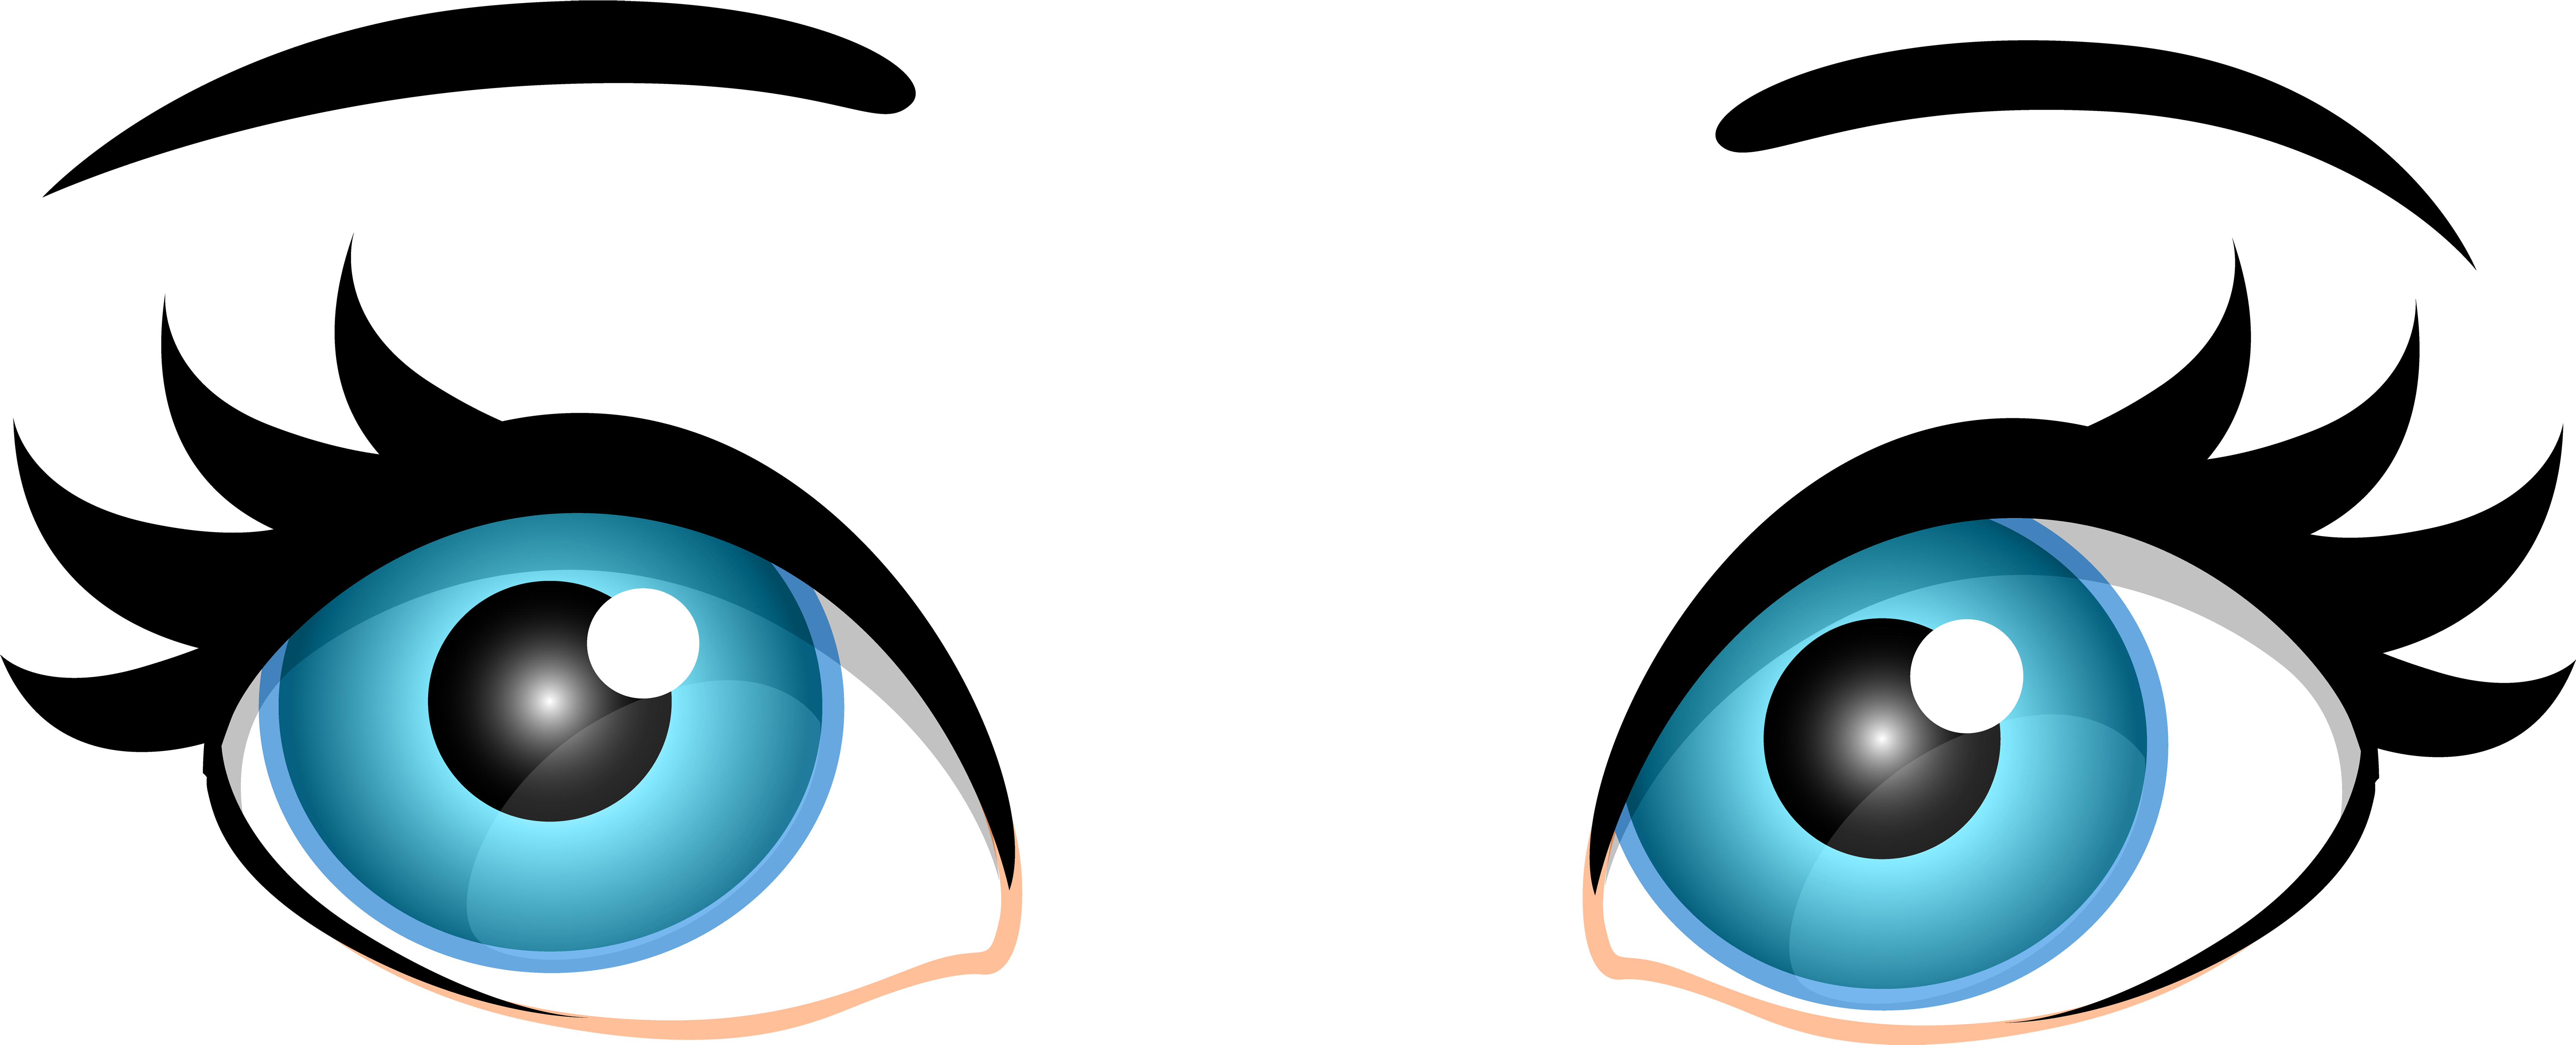 Of audio eyes and. Eye clipart transparent background